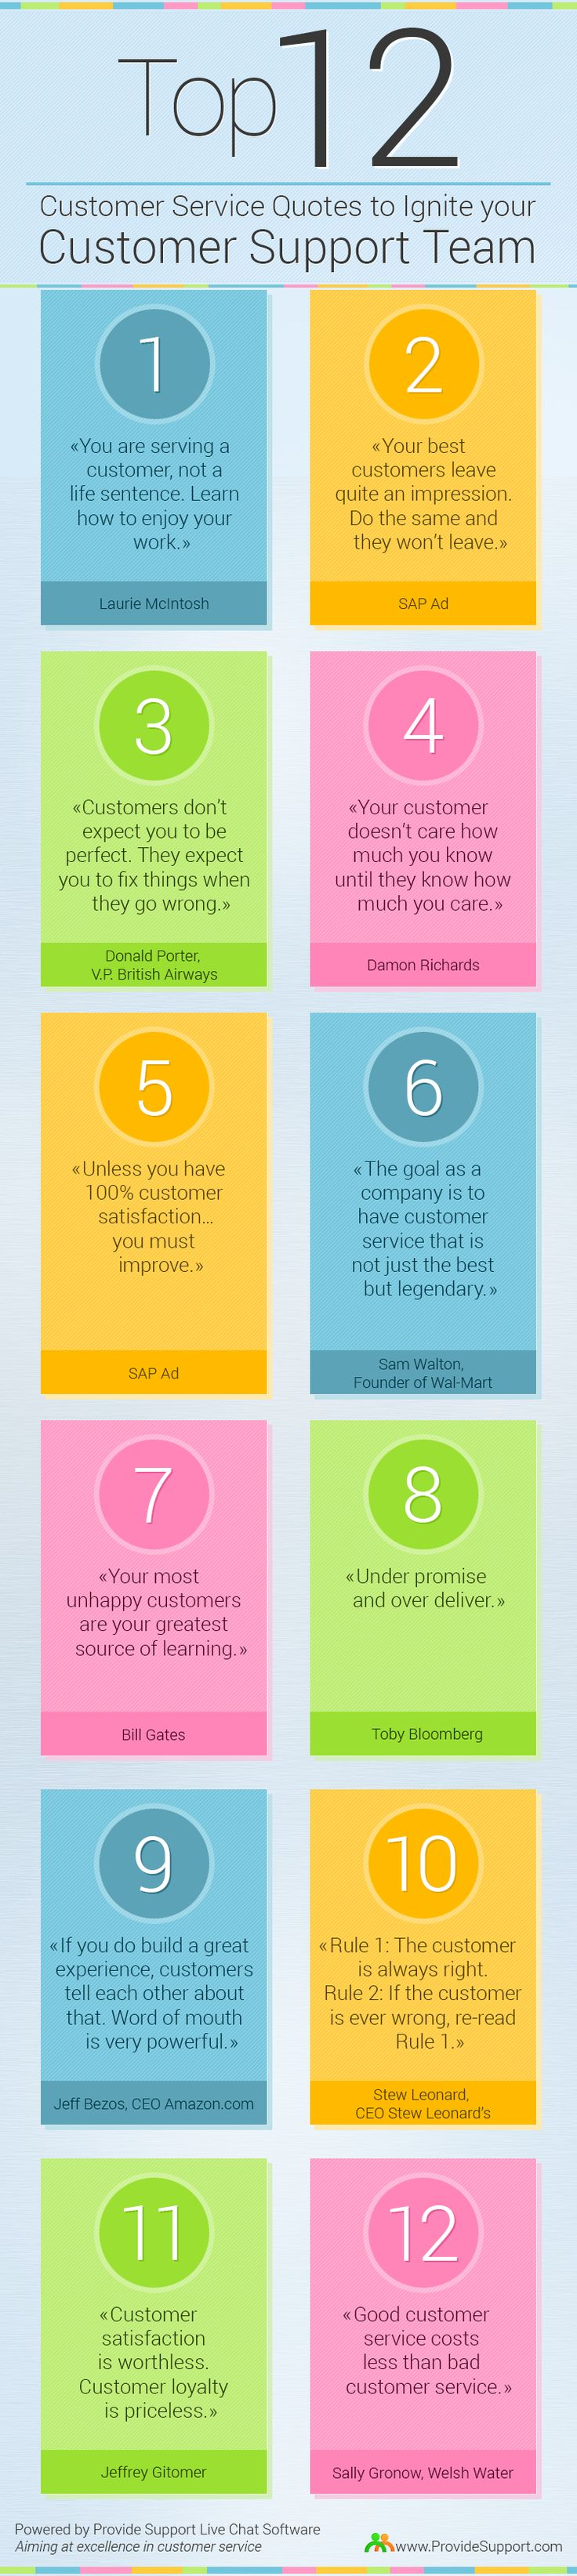 best customer service quotes customer service 12 quotes for inspiring your craft business success by icraftopia com